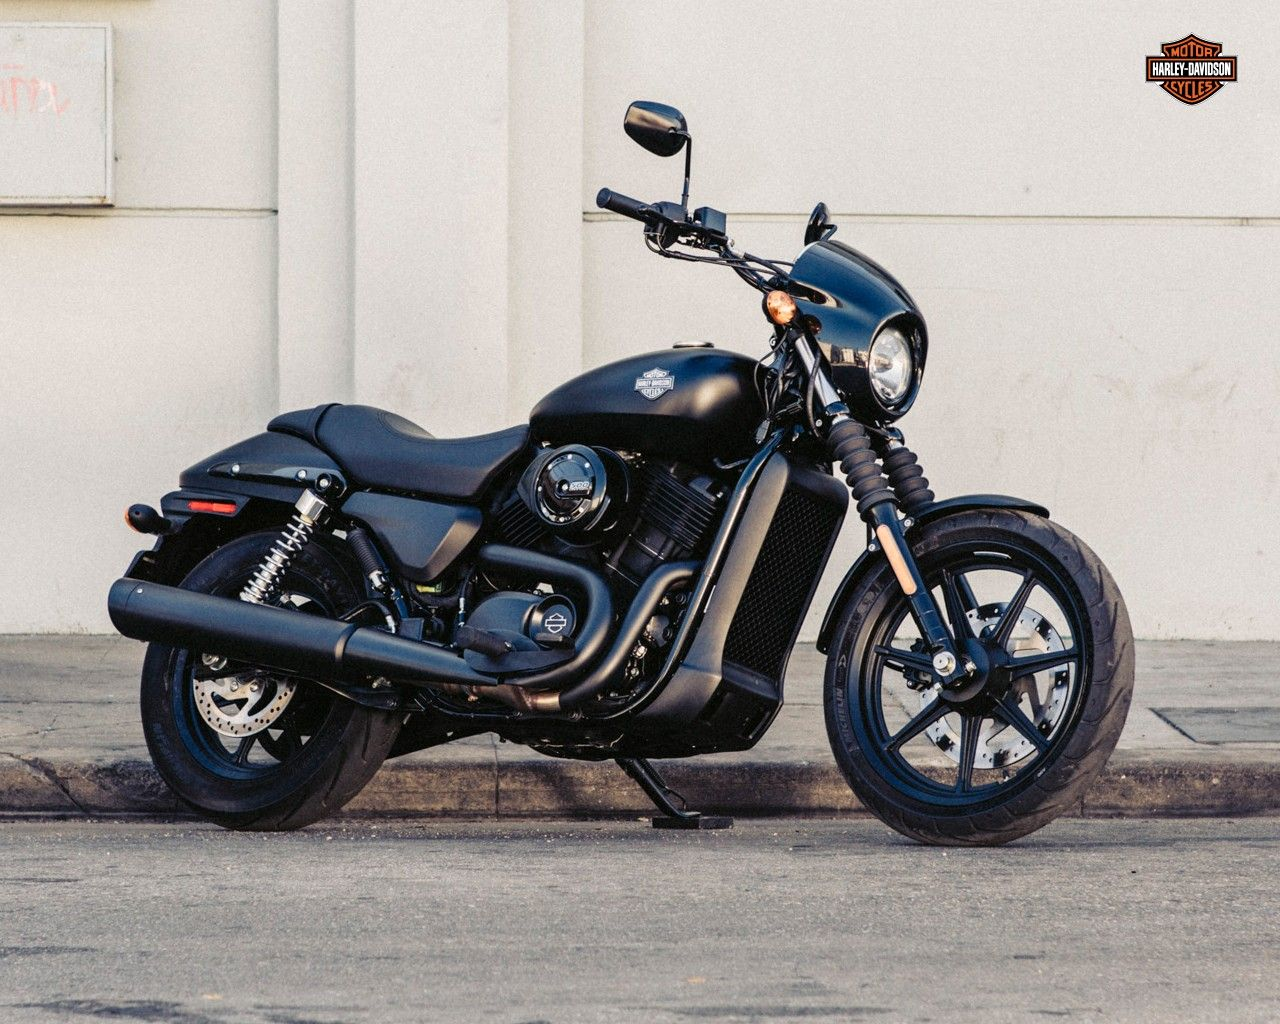 Used Harley Davidson Dyna Motorcycles For Sale For Sale California >> New 2015 Harley Davidson Motorcycles | Autos Post